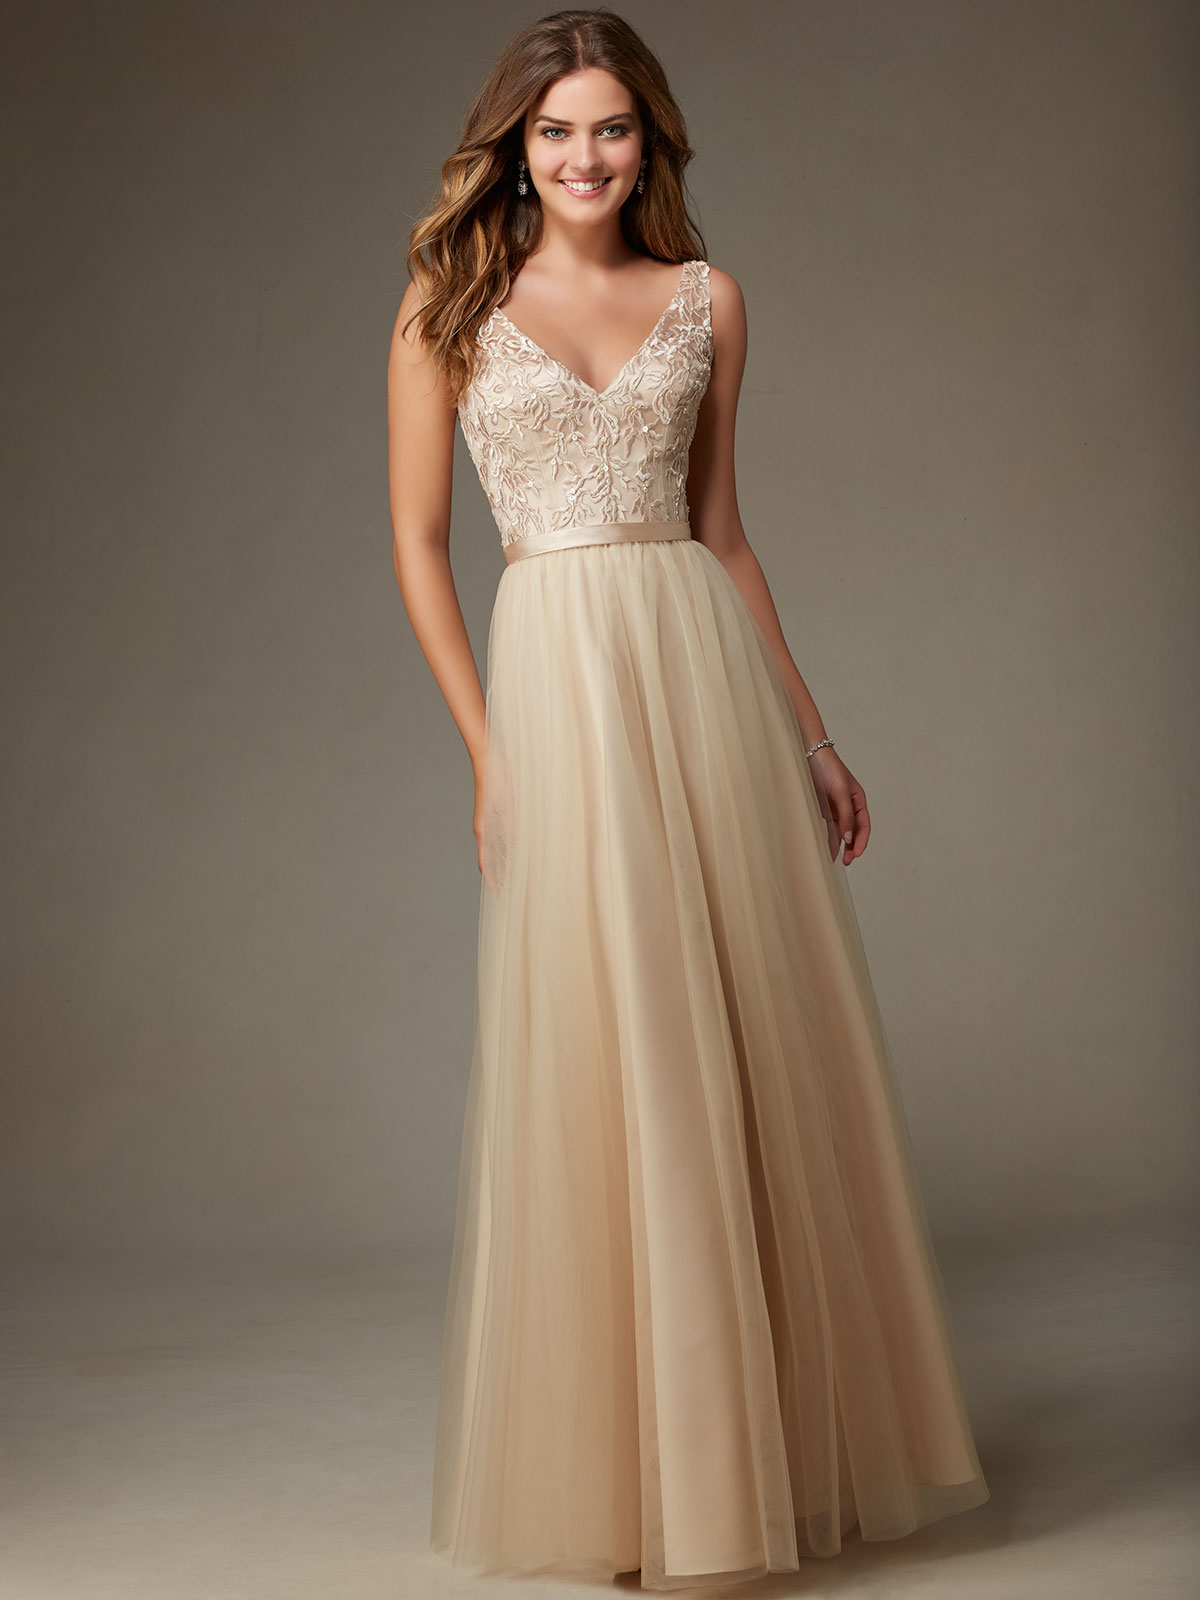 Mori lee 696 bridesmaid dressbridesmaid dressesdressesss mori lee 696 bridesmaid dress ombrellifo Images